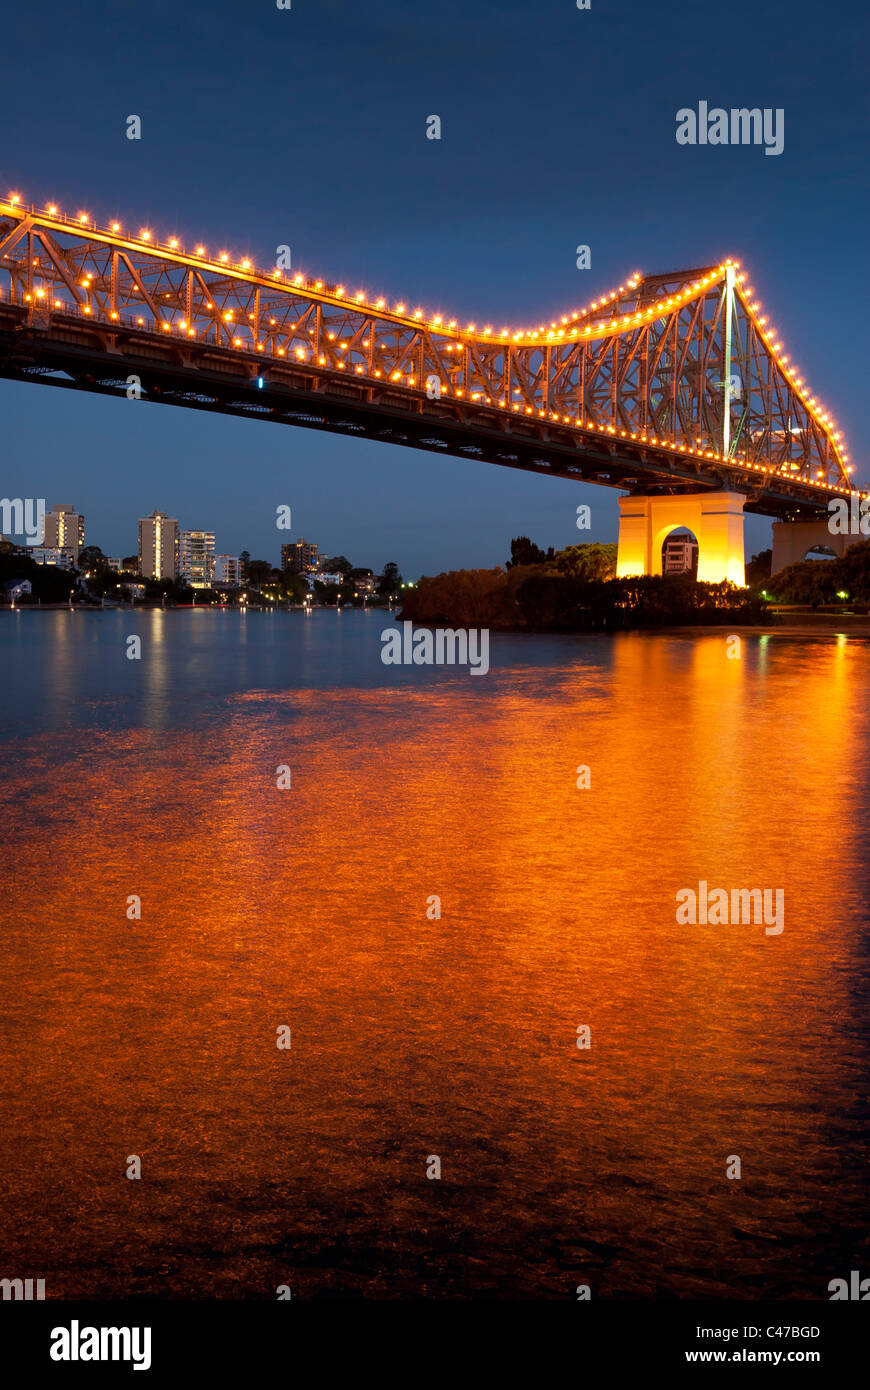 Story Bridge Brisbane at night - Stock Image